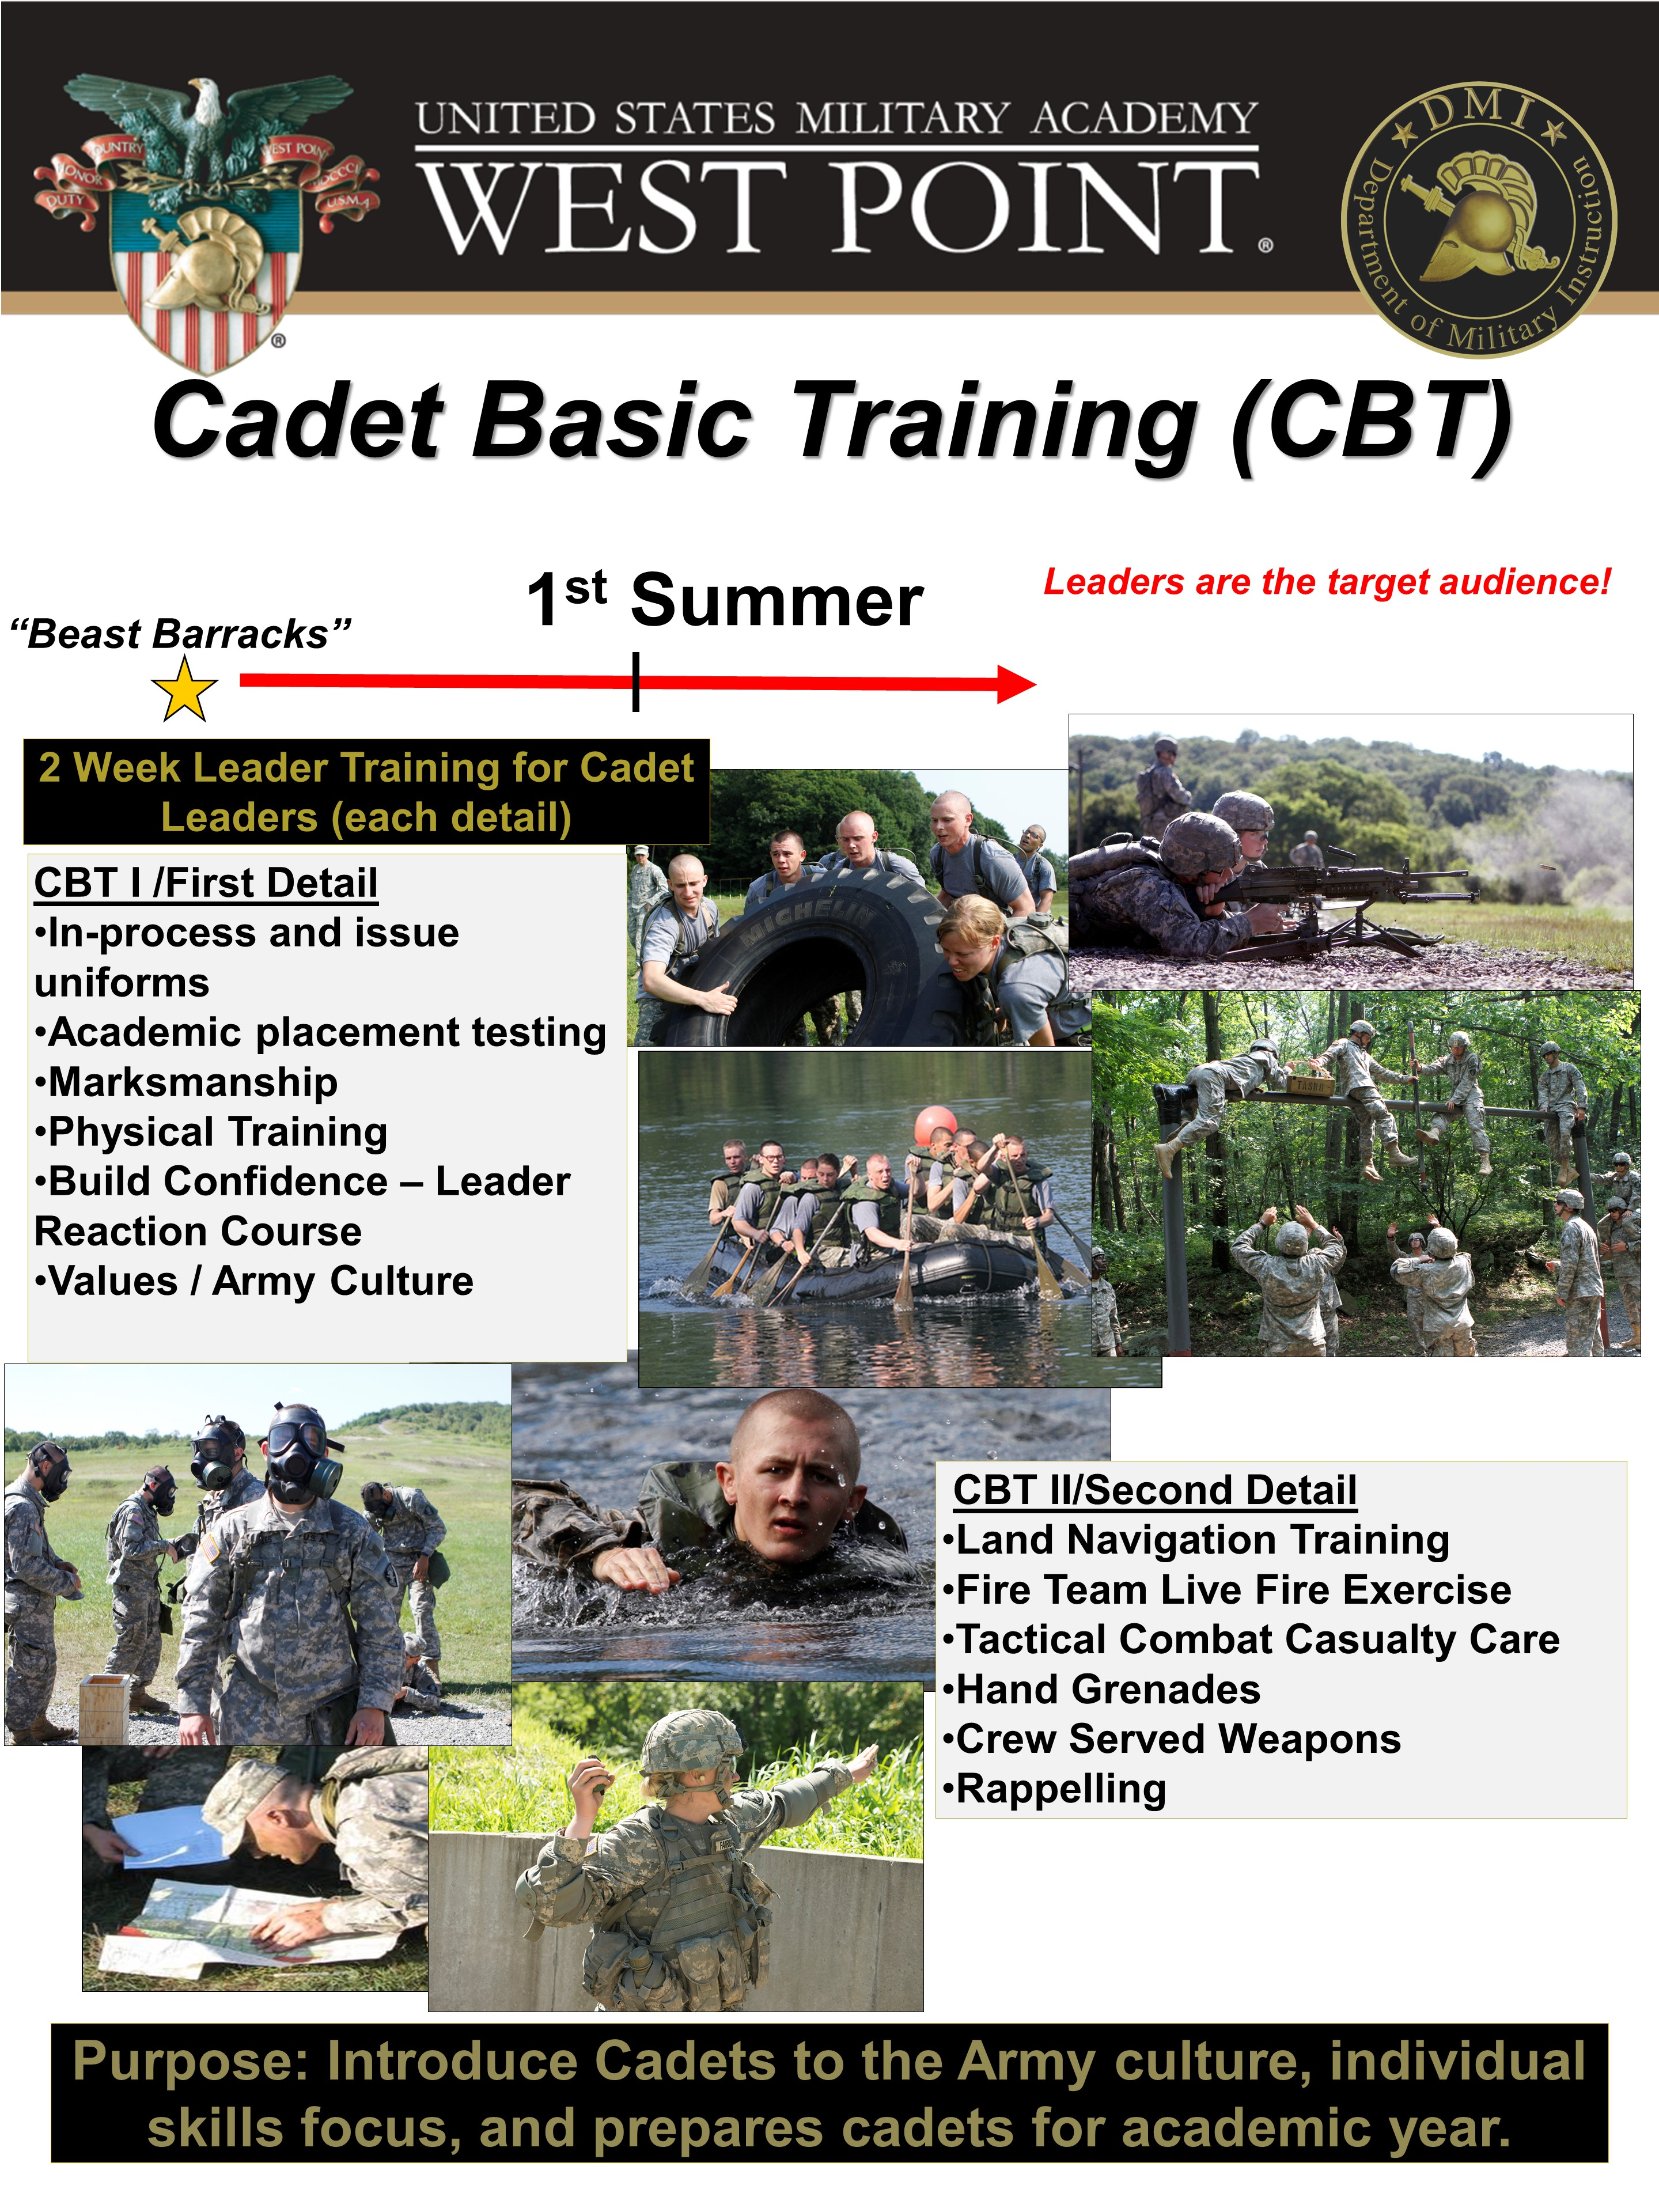 Cadet Basic Training